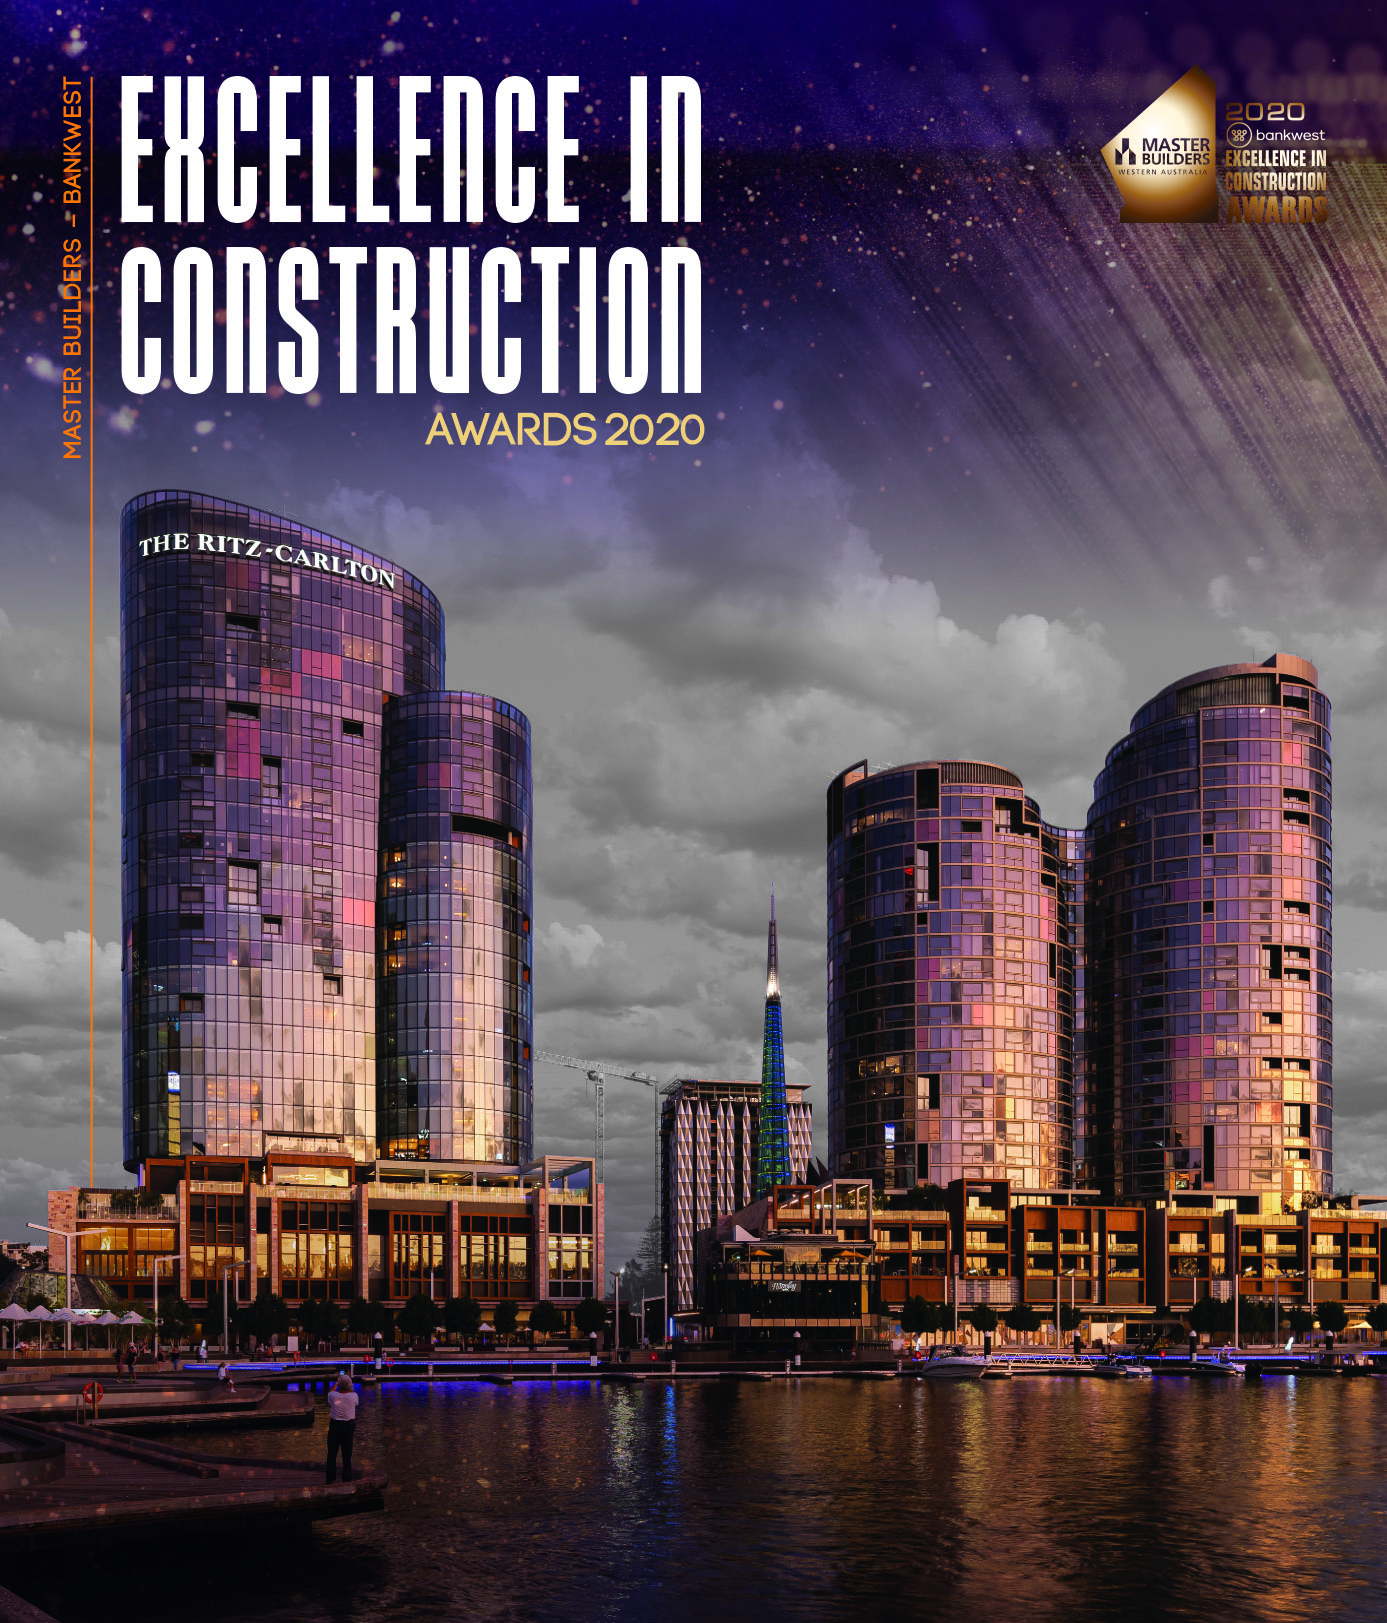 The MBWA Excellence in Construction Awards 2020